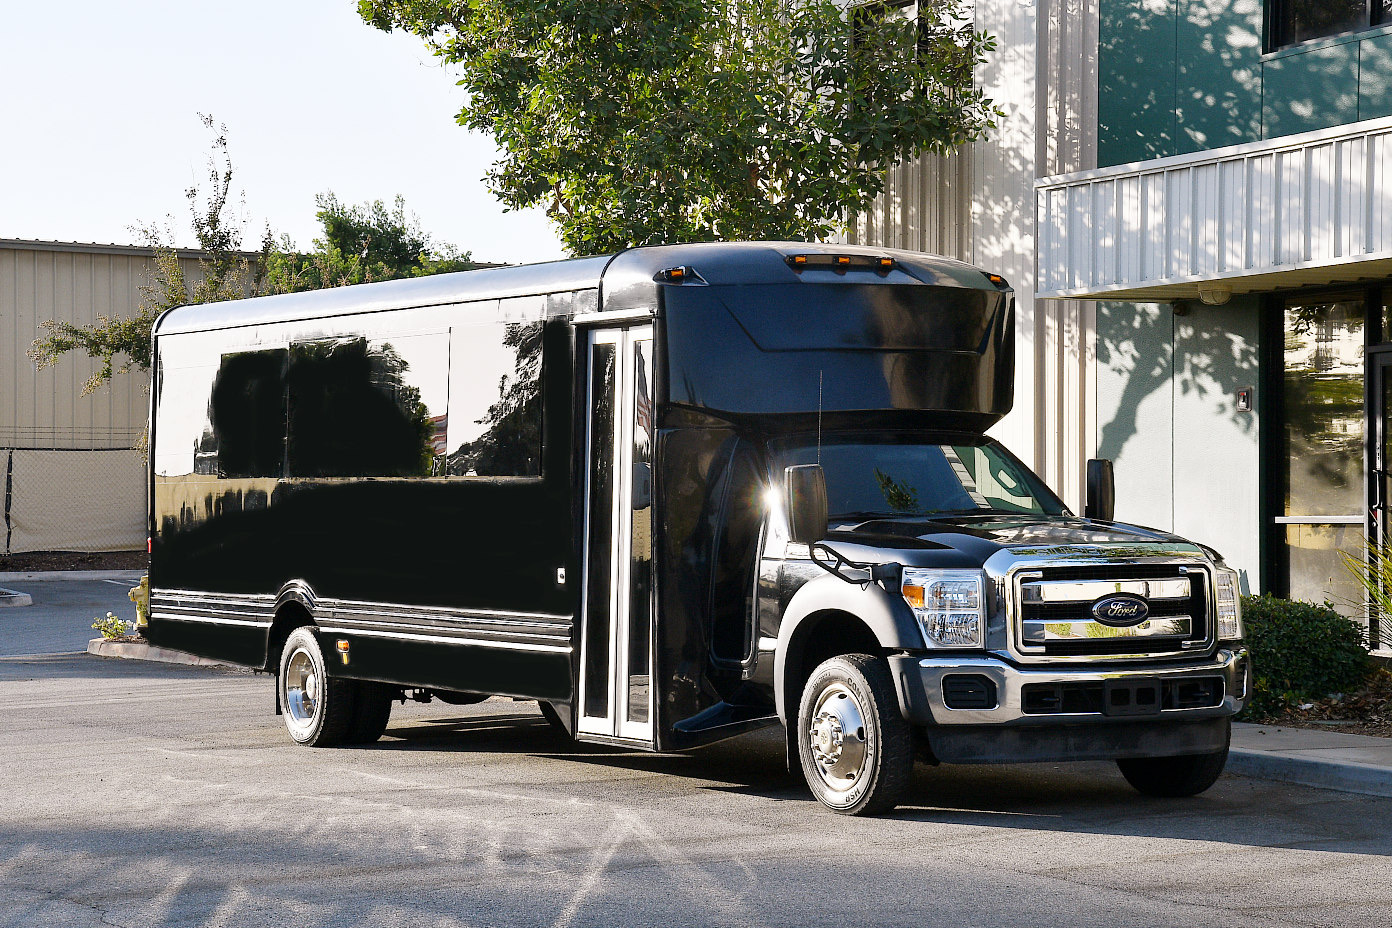 How to Make a Party Bus More Kid Friendly